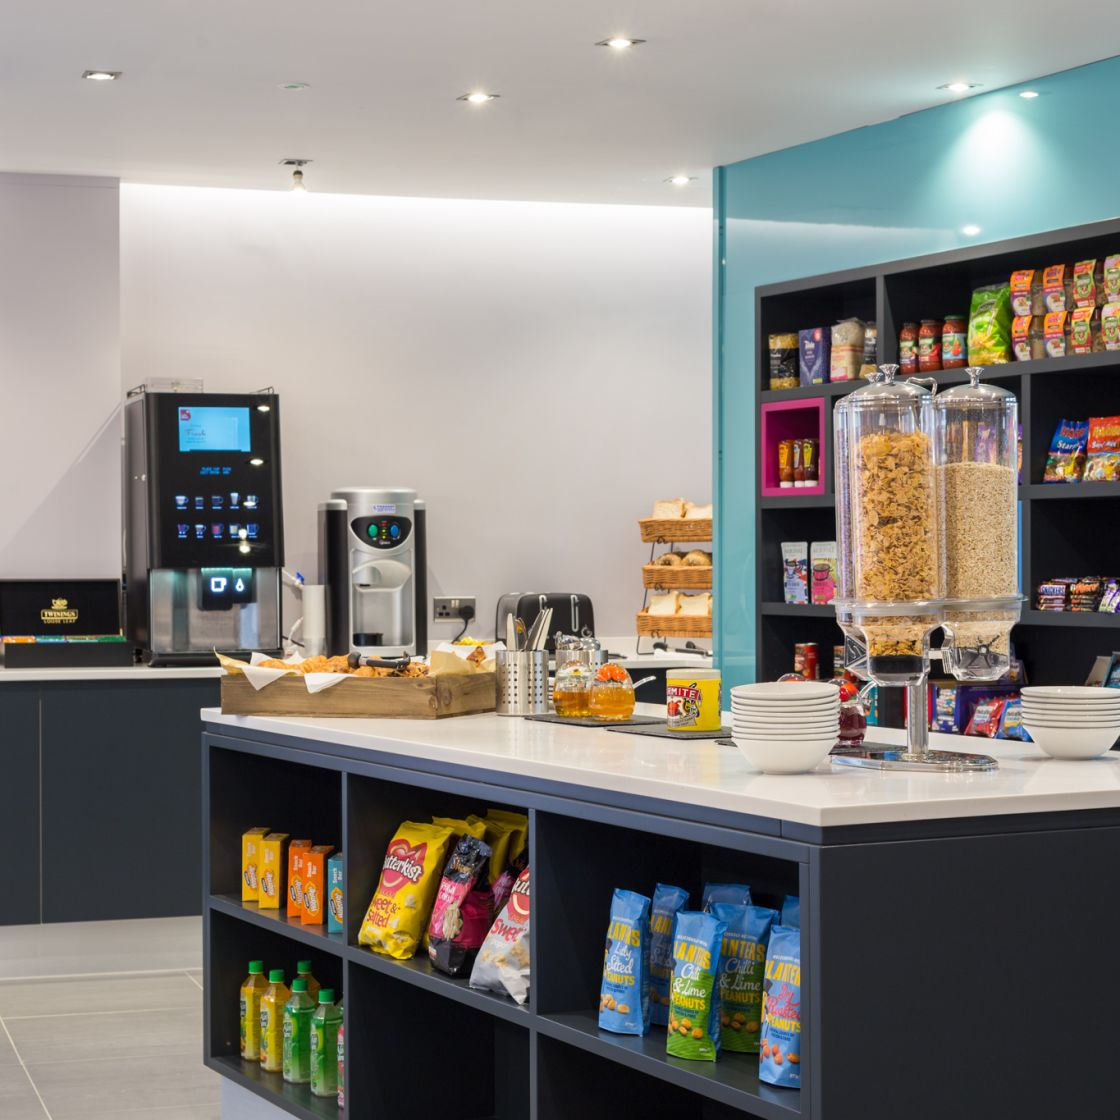 Grab and Go Breakfast area with coffee machine at IconInc, The Glassworks. Student Accommodation in Leeds